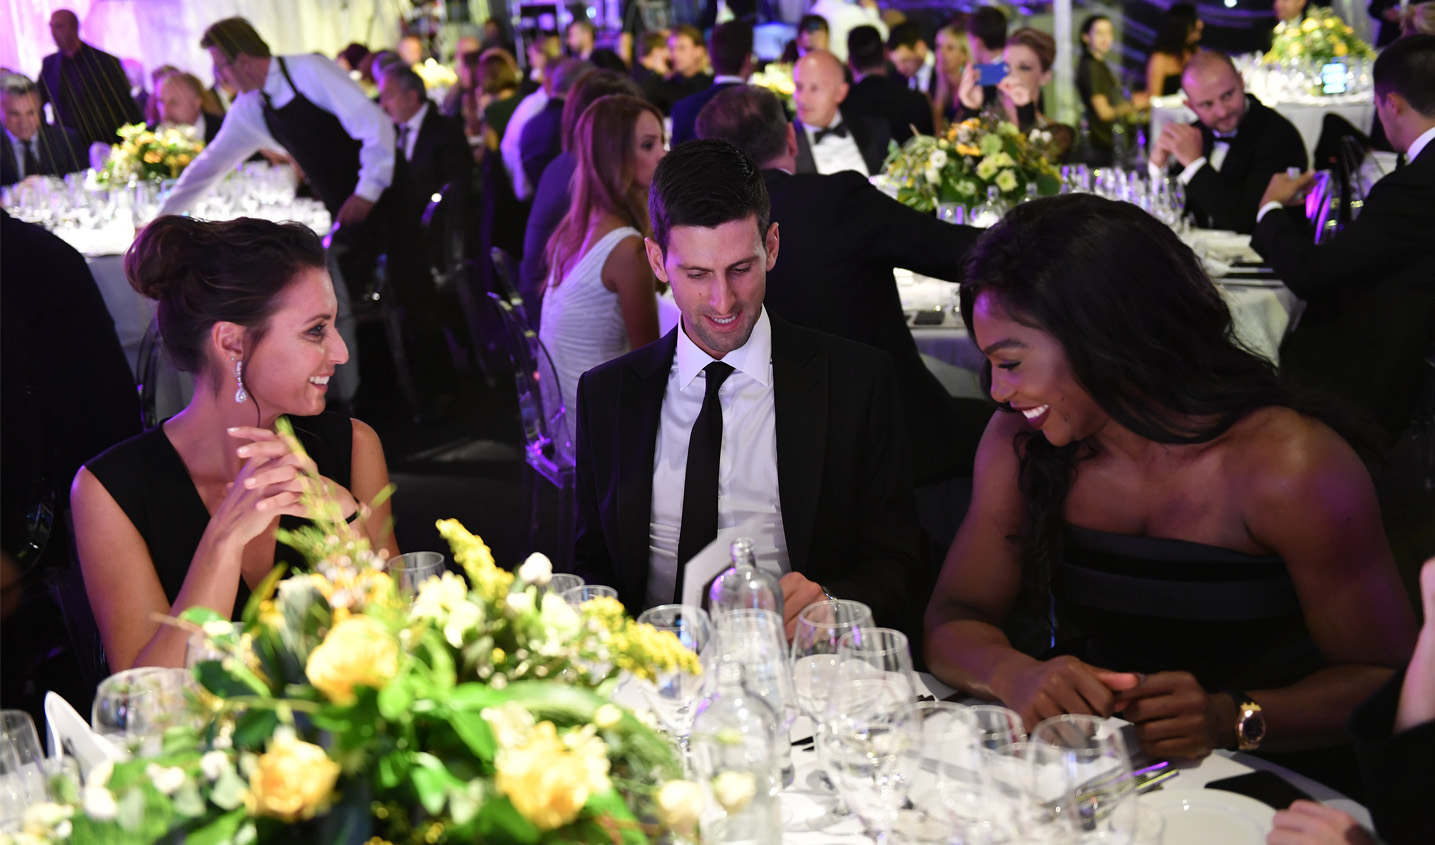 Flavia Pennetta, Novak Djokovic and Serena Williams